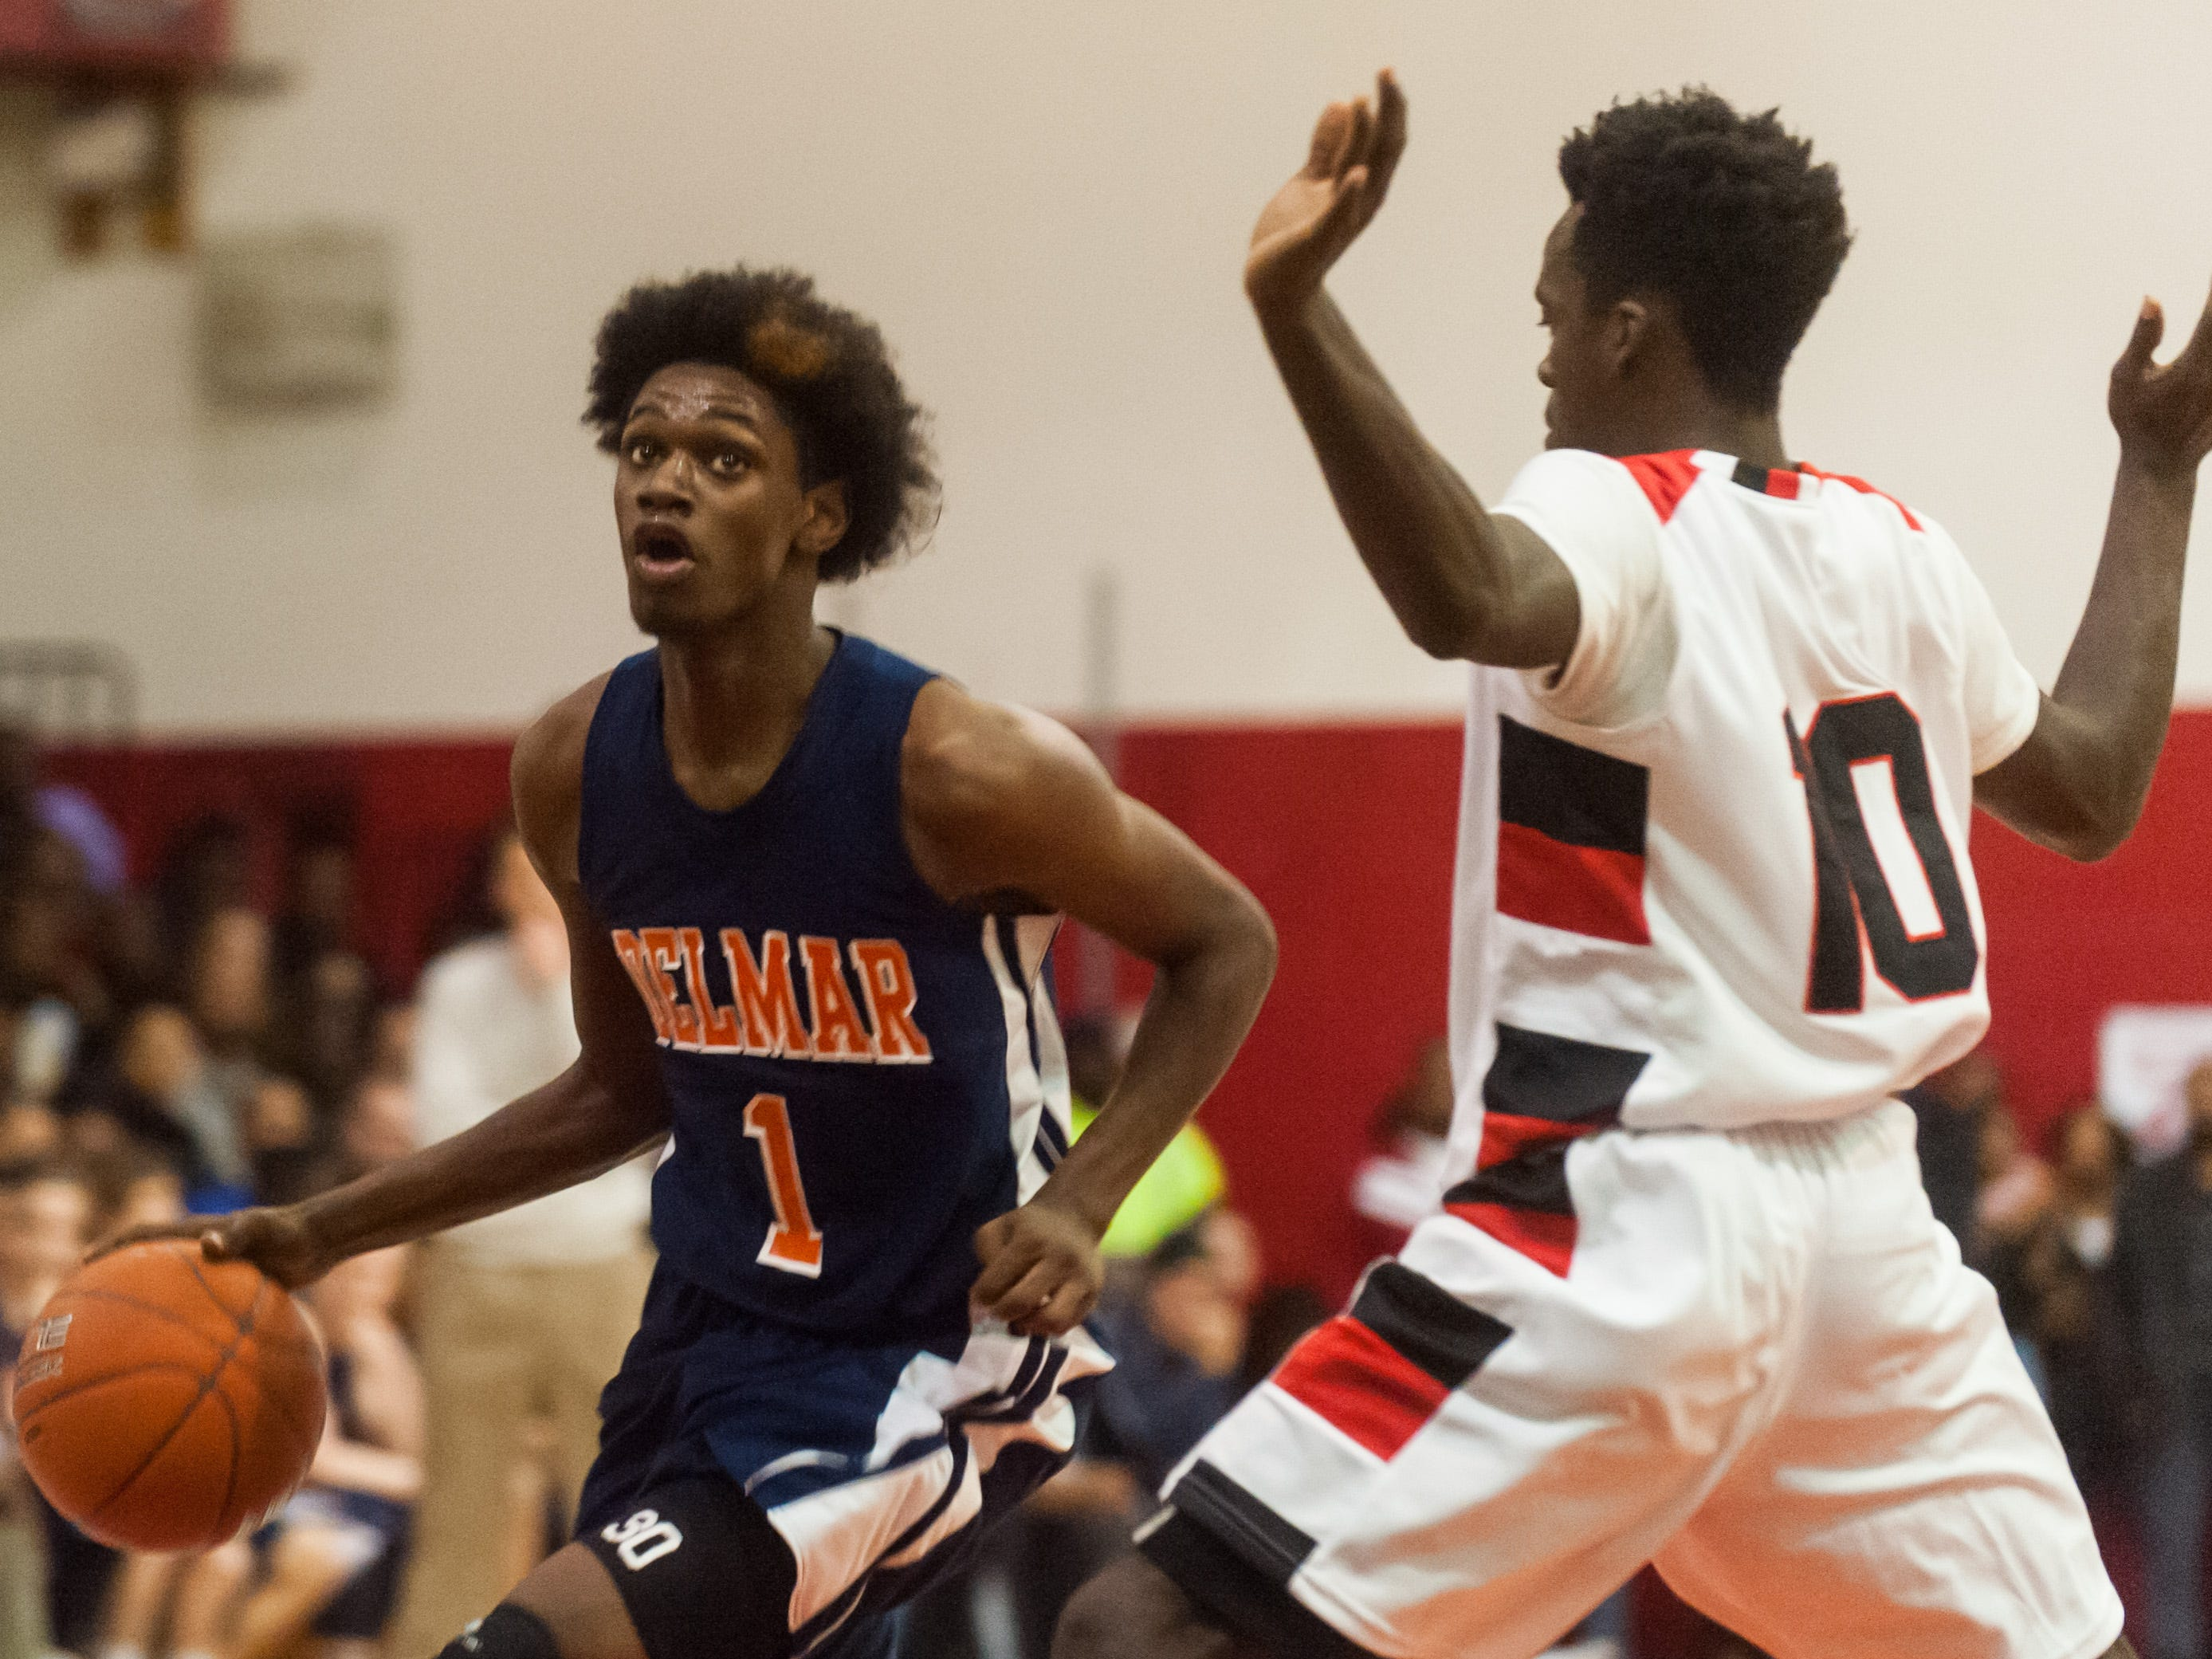 Larry Ennis and Delmar need some help as they take on Laurel and Milford to round out their schedule.